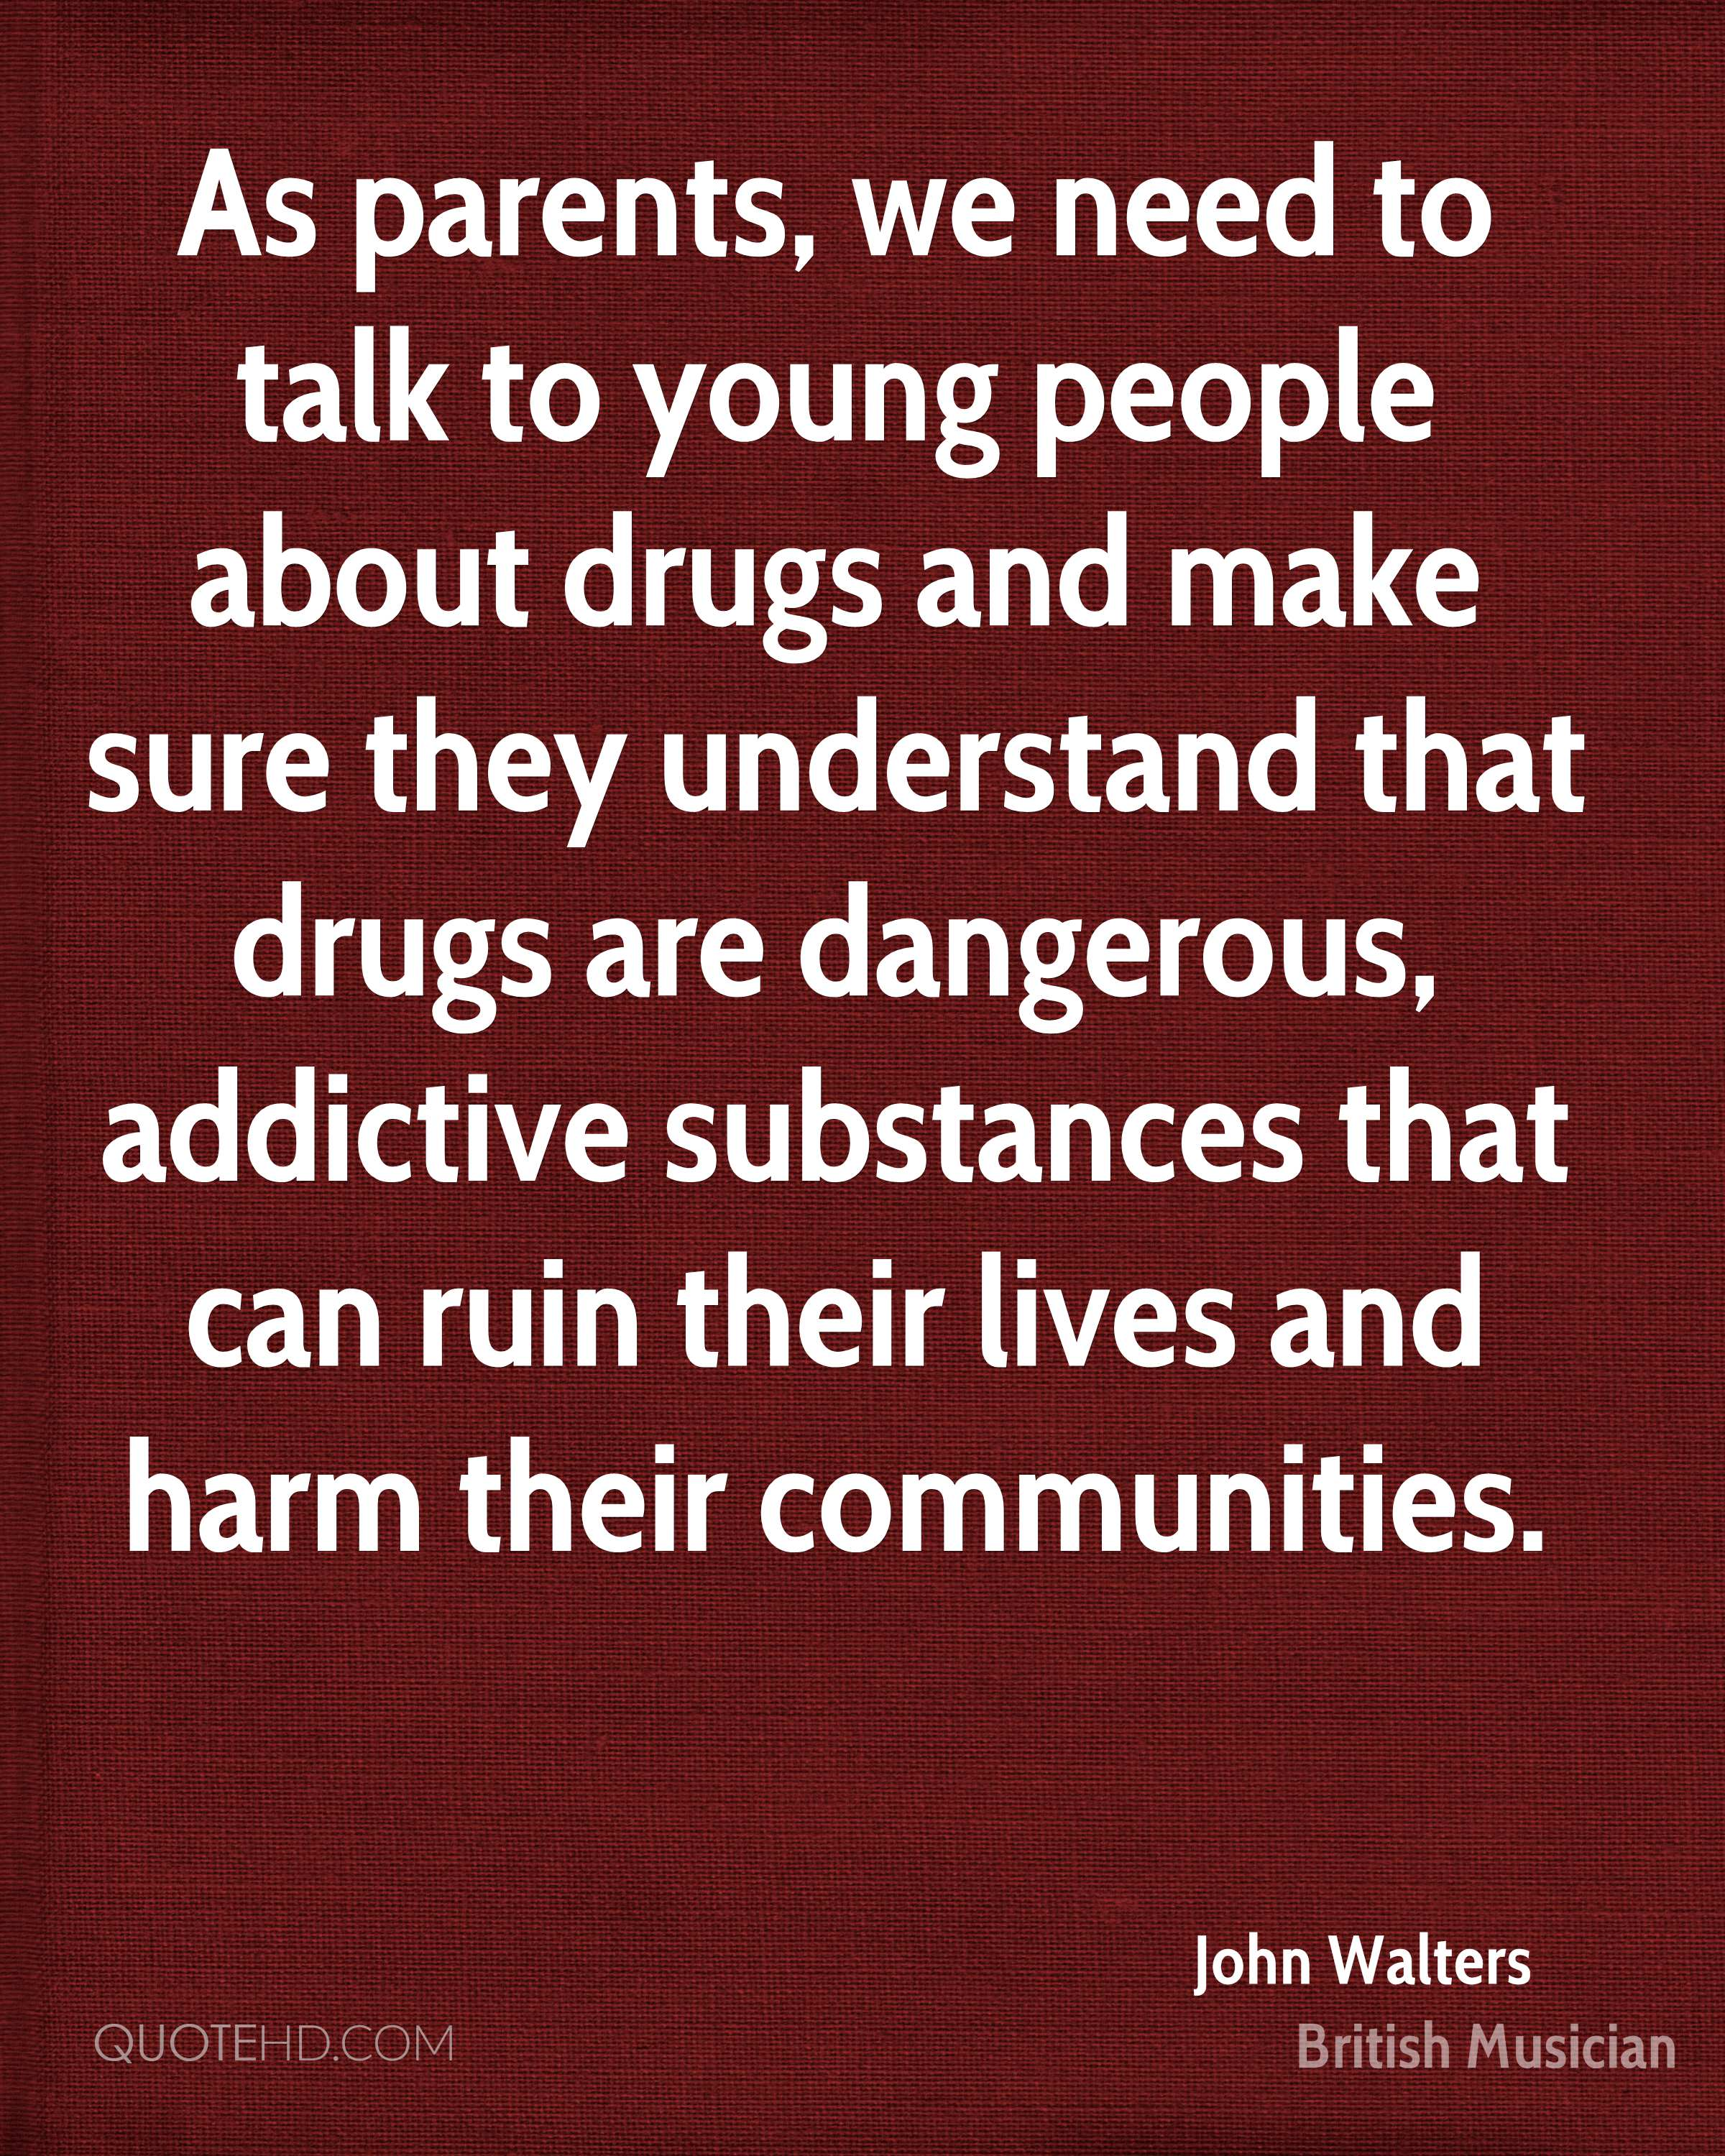 As parents, we need to talk to young people about drugs and make sure they understand that drugs are dangerous, addictive substances that can ruin their lives and harm their communities.